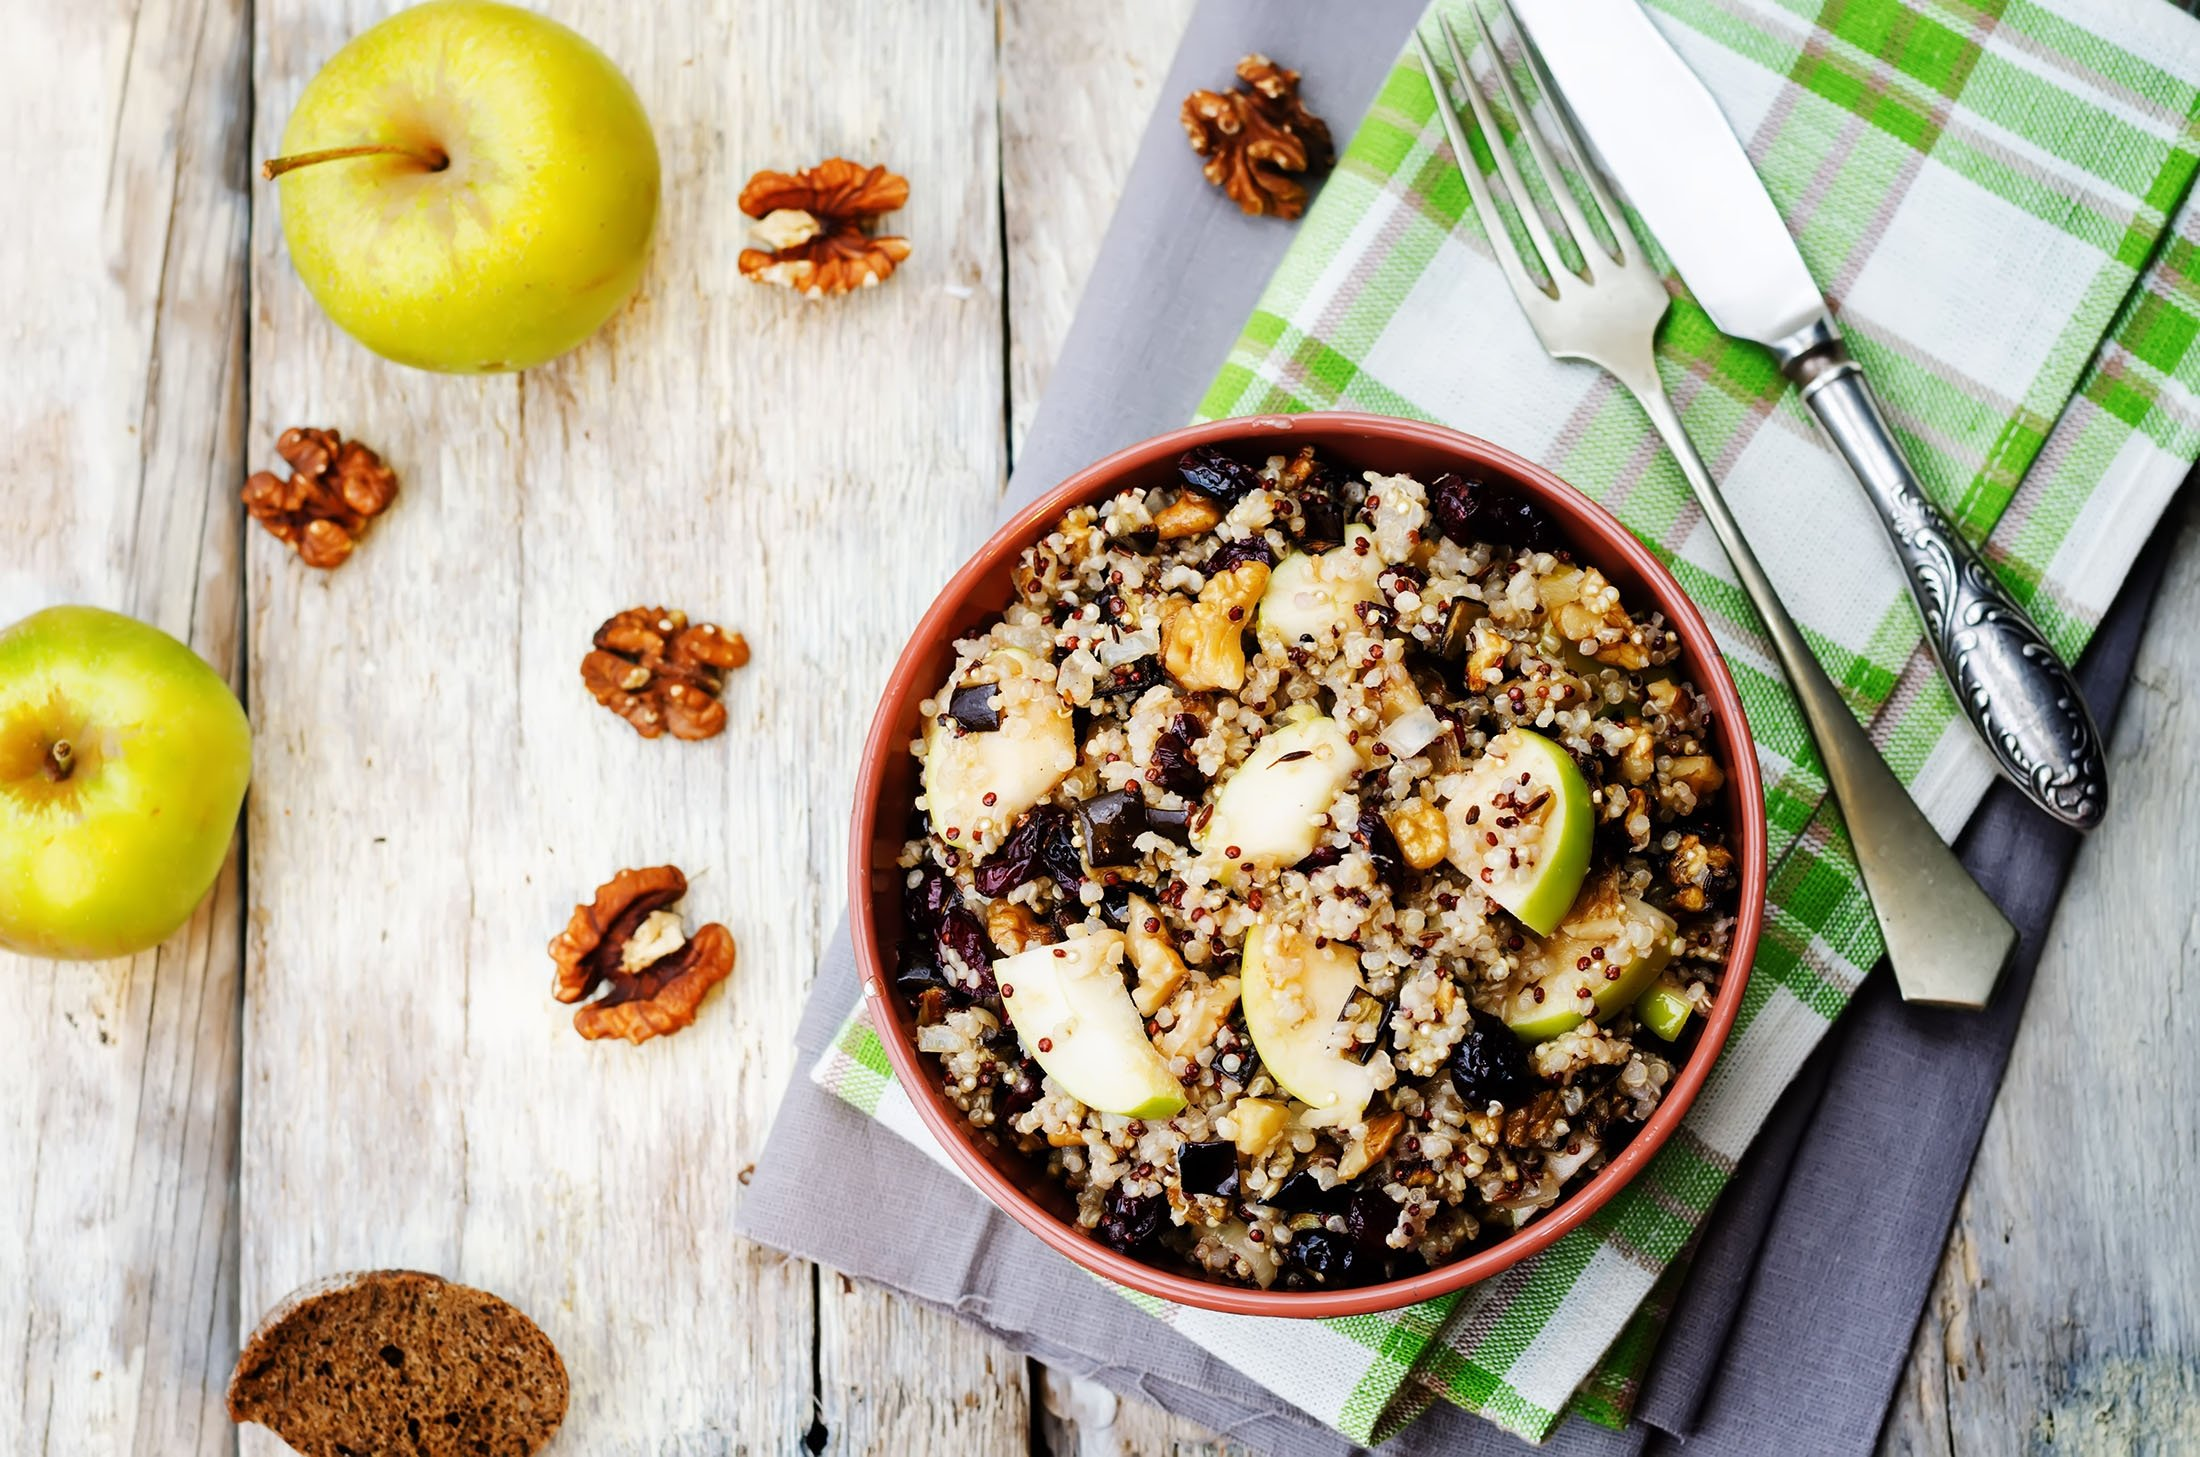 Apples and dried cranberries pair well with grains. (Shutterstock Photo)